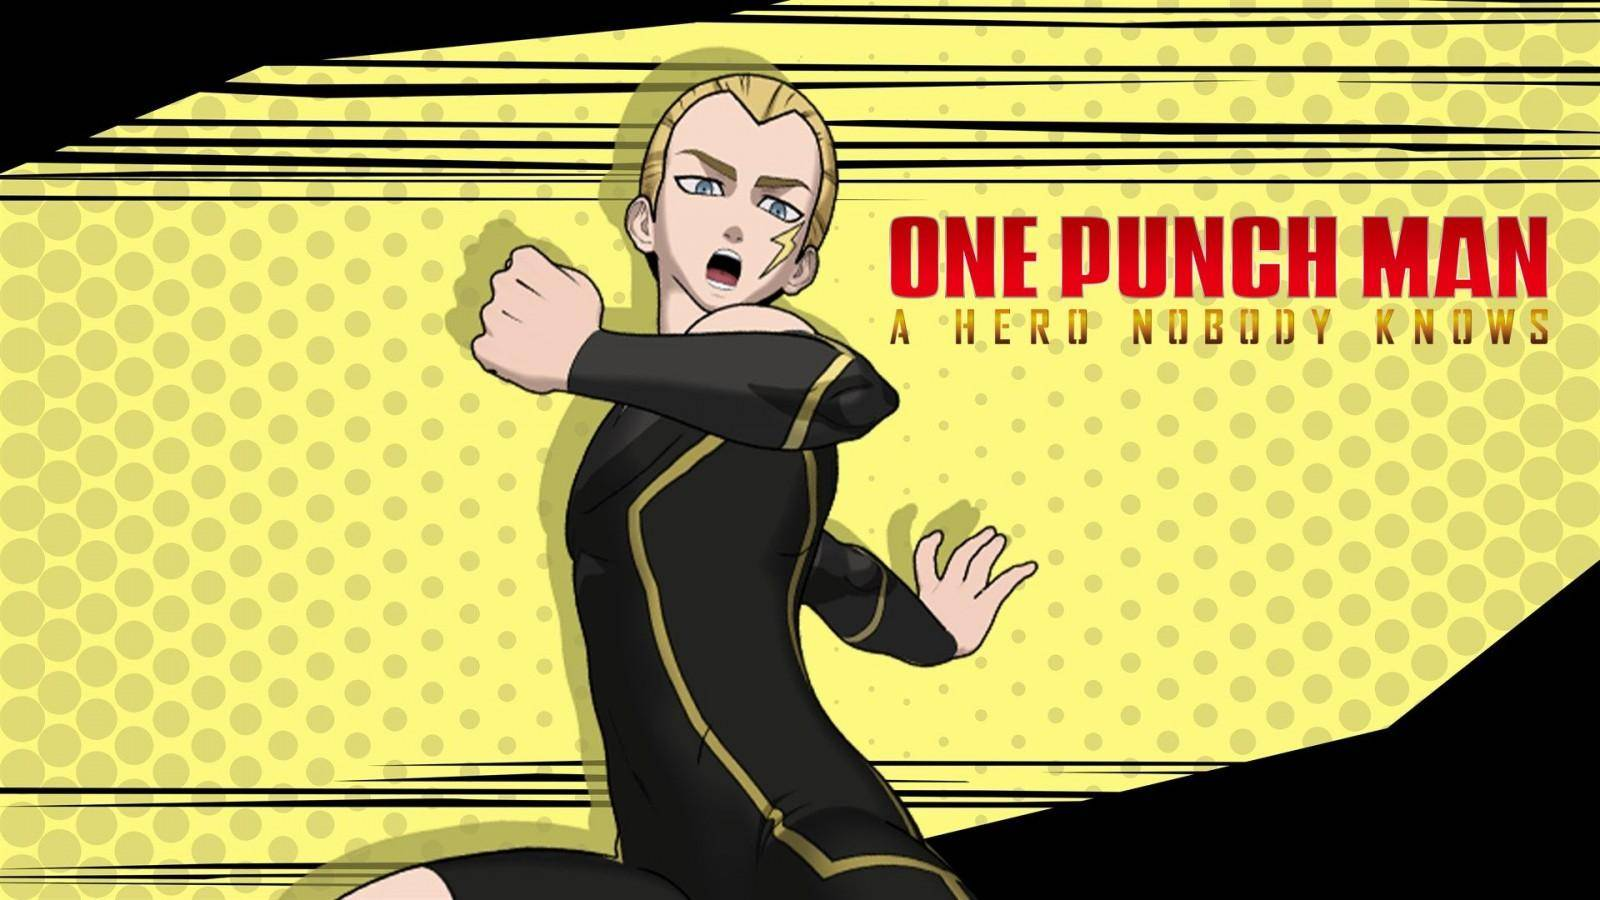 One Punch-Man: A Hero Nobody Knows lightning max